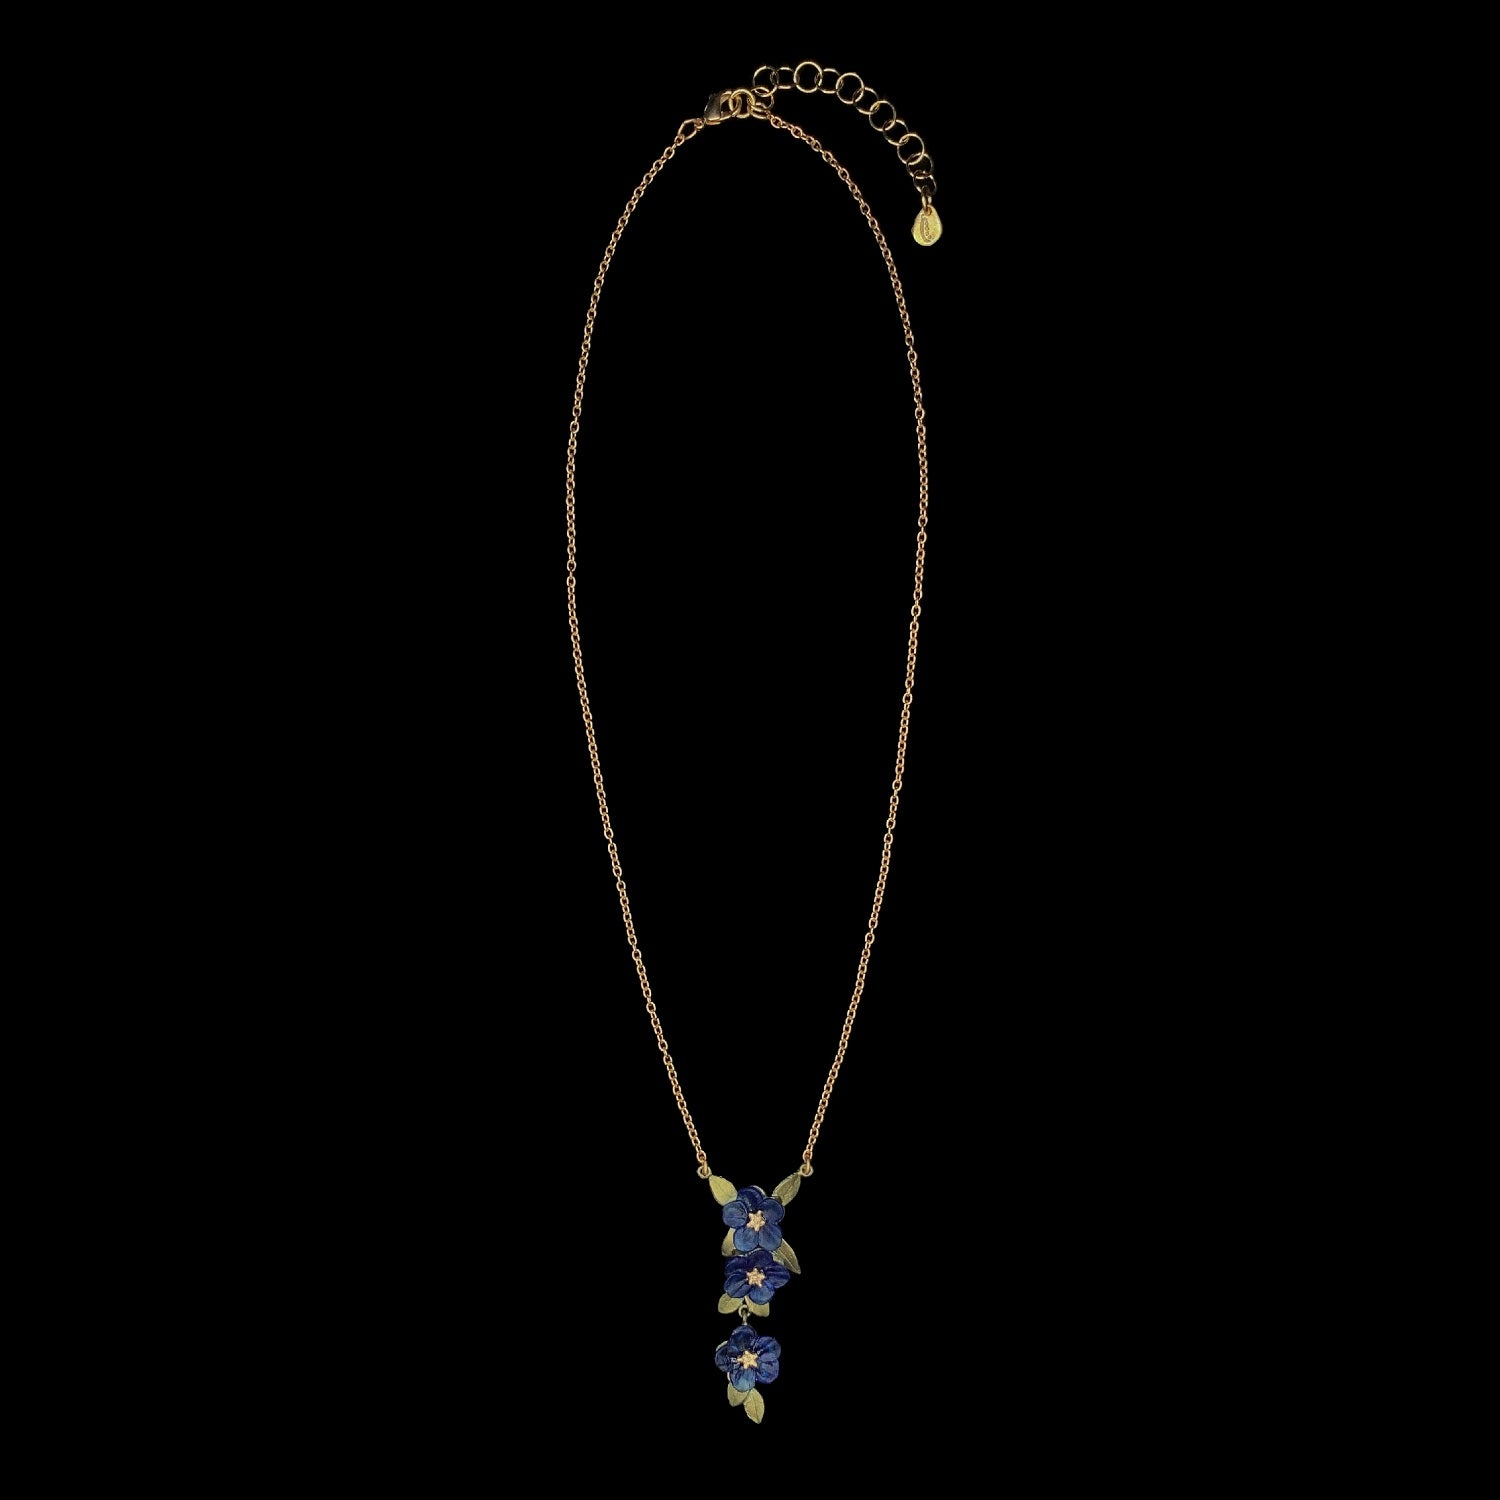 Blue-Eyed Mary Pendant - Triple Flower